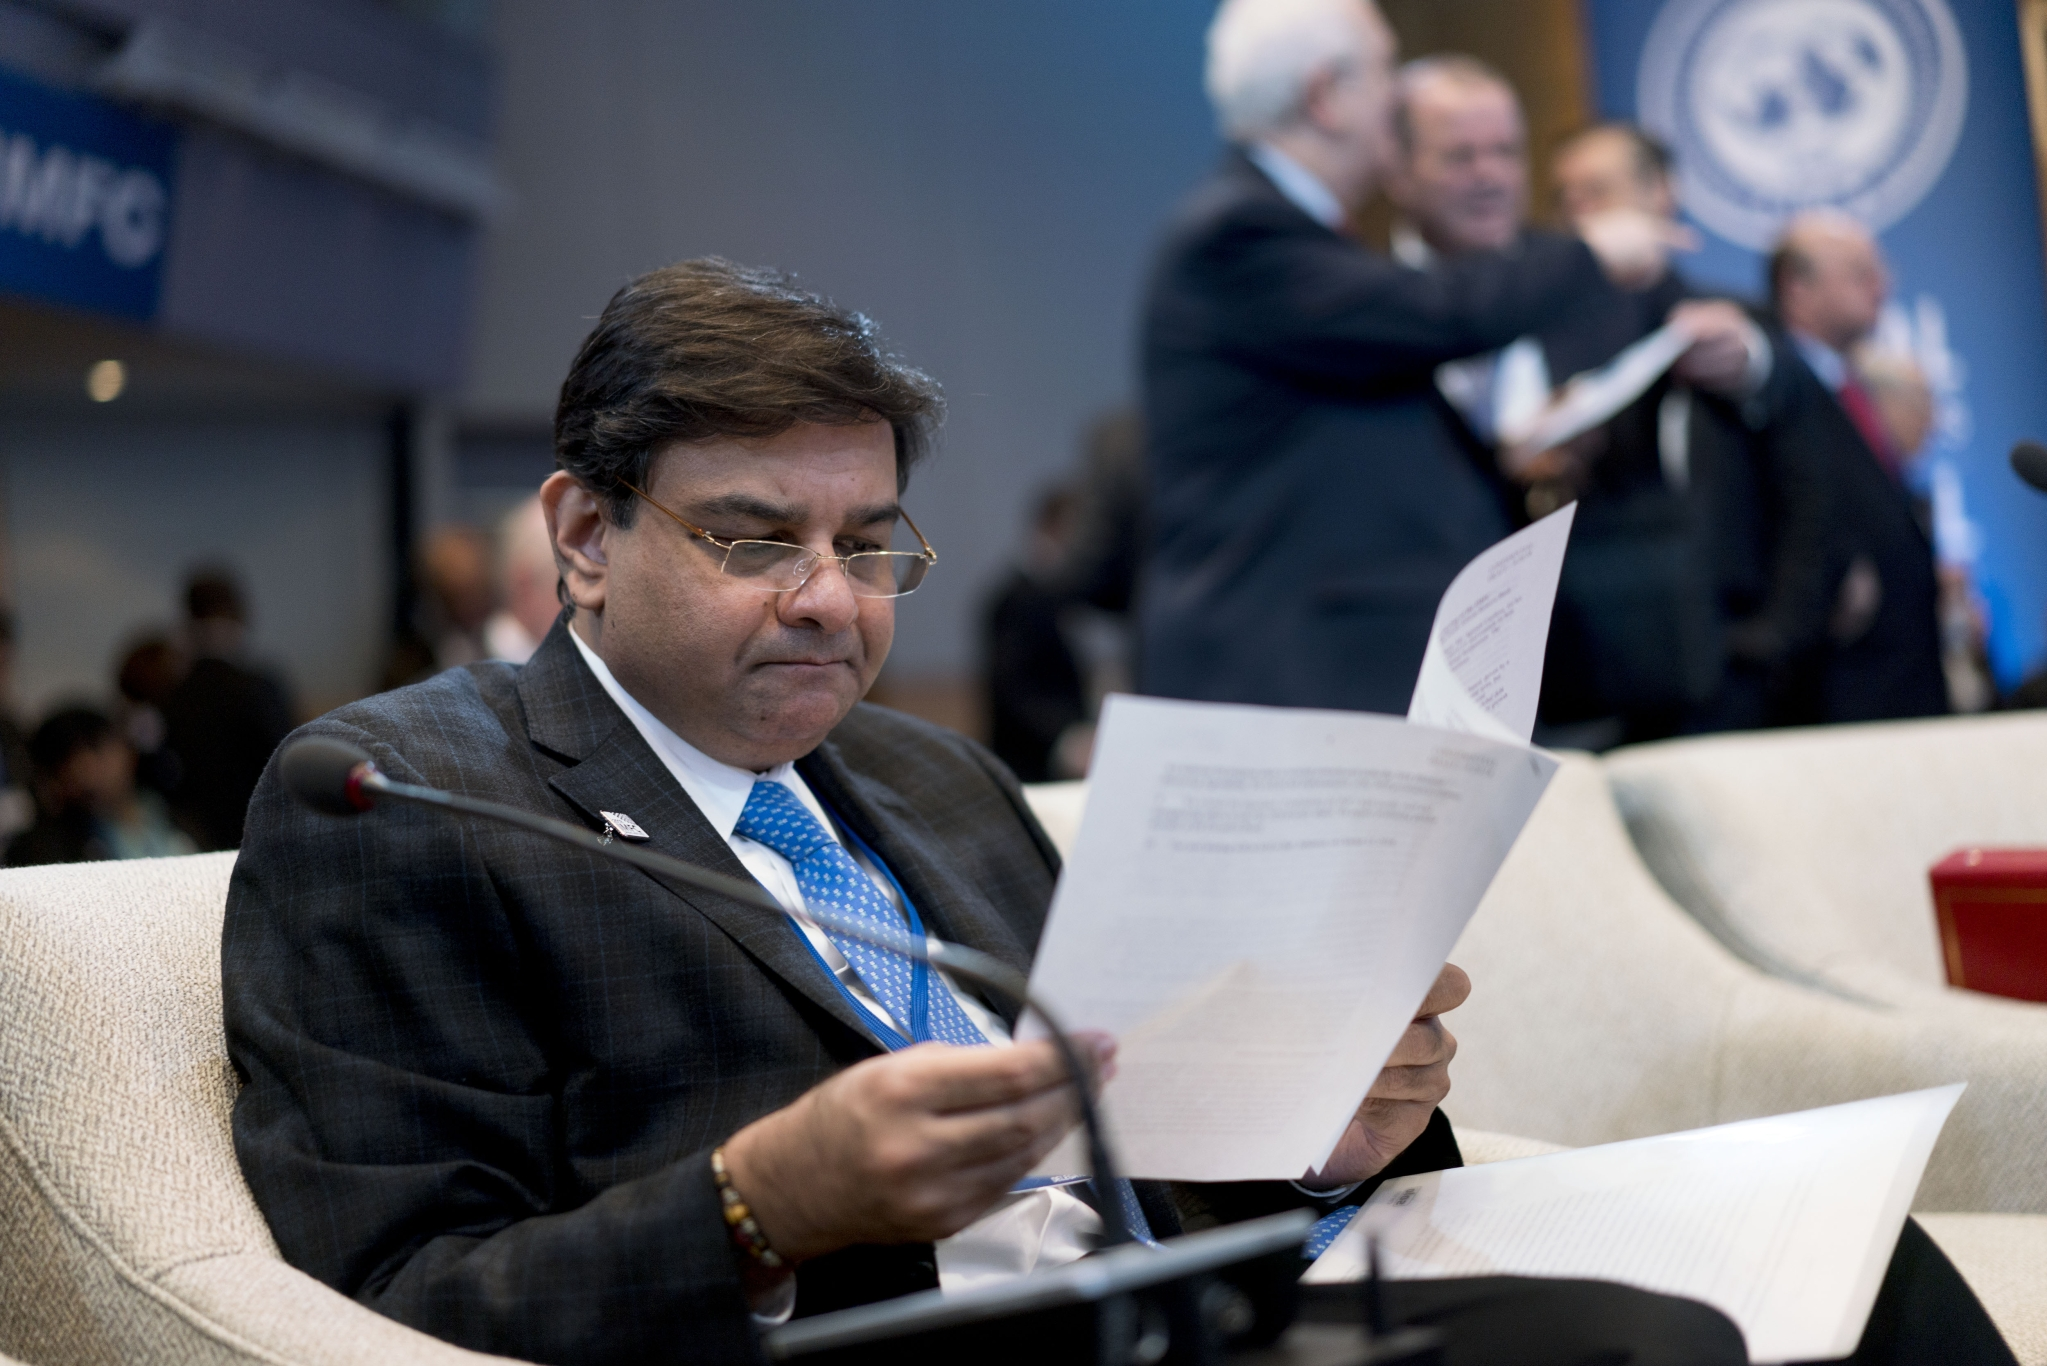 Urjit Patel governor of the Reserve Bank of India at the spring meetings of the International Monetary Fund and World Bank in Washington D.C